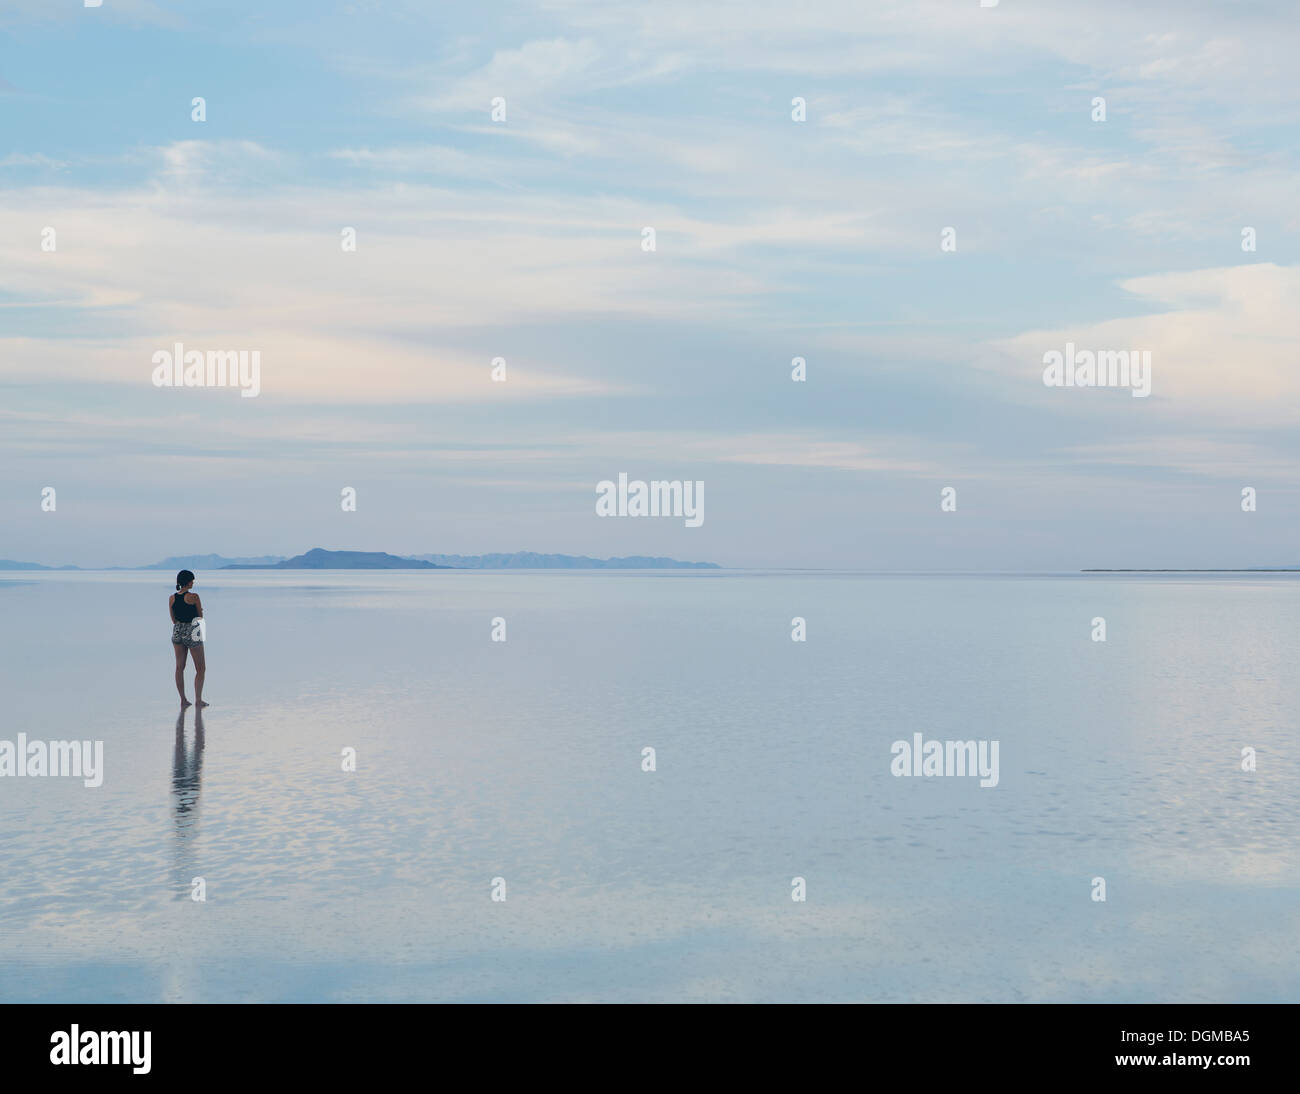 A woman standing on the flooded Bonneville Salt Flats at dusk. Reflections in the shallow water. - Stock Image